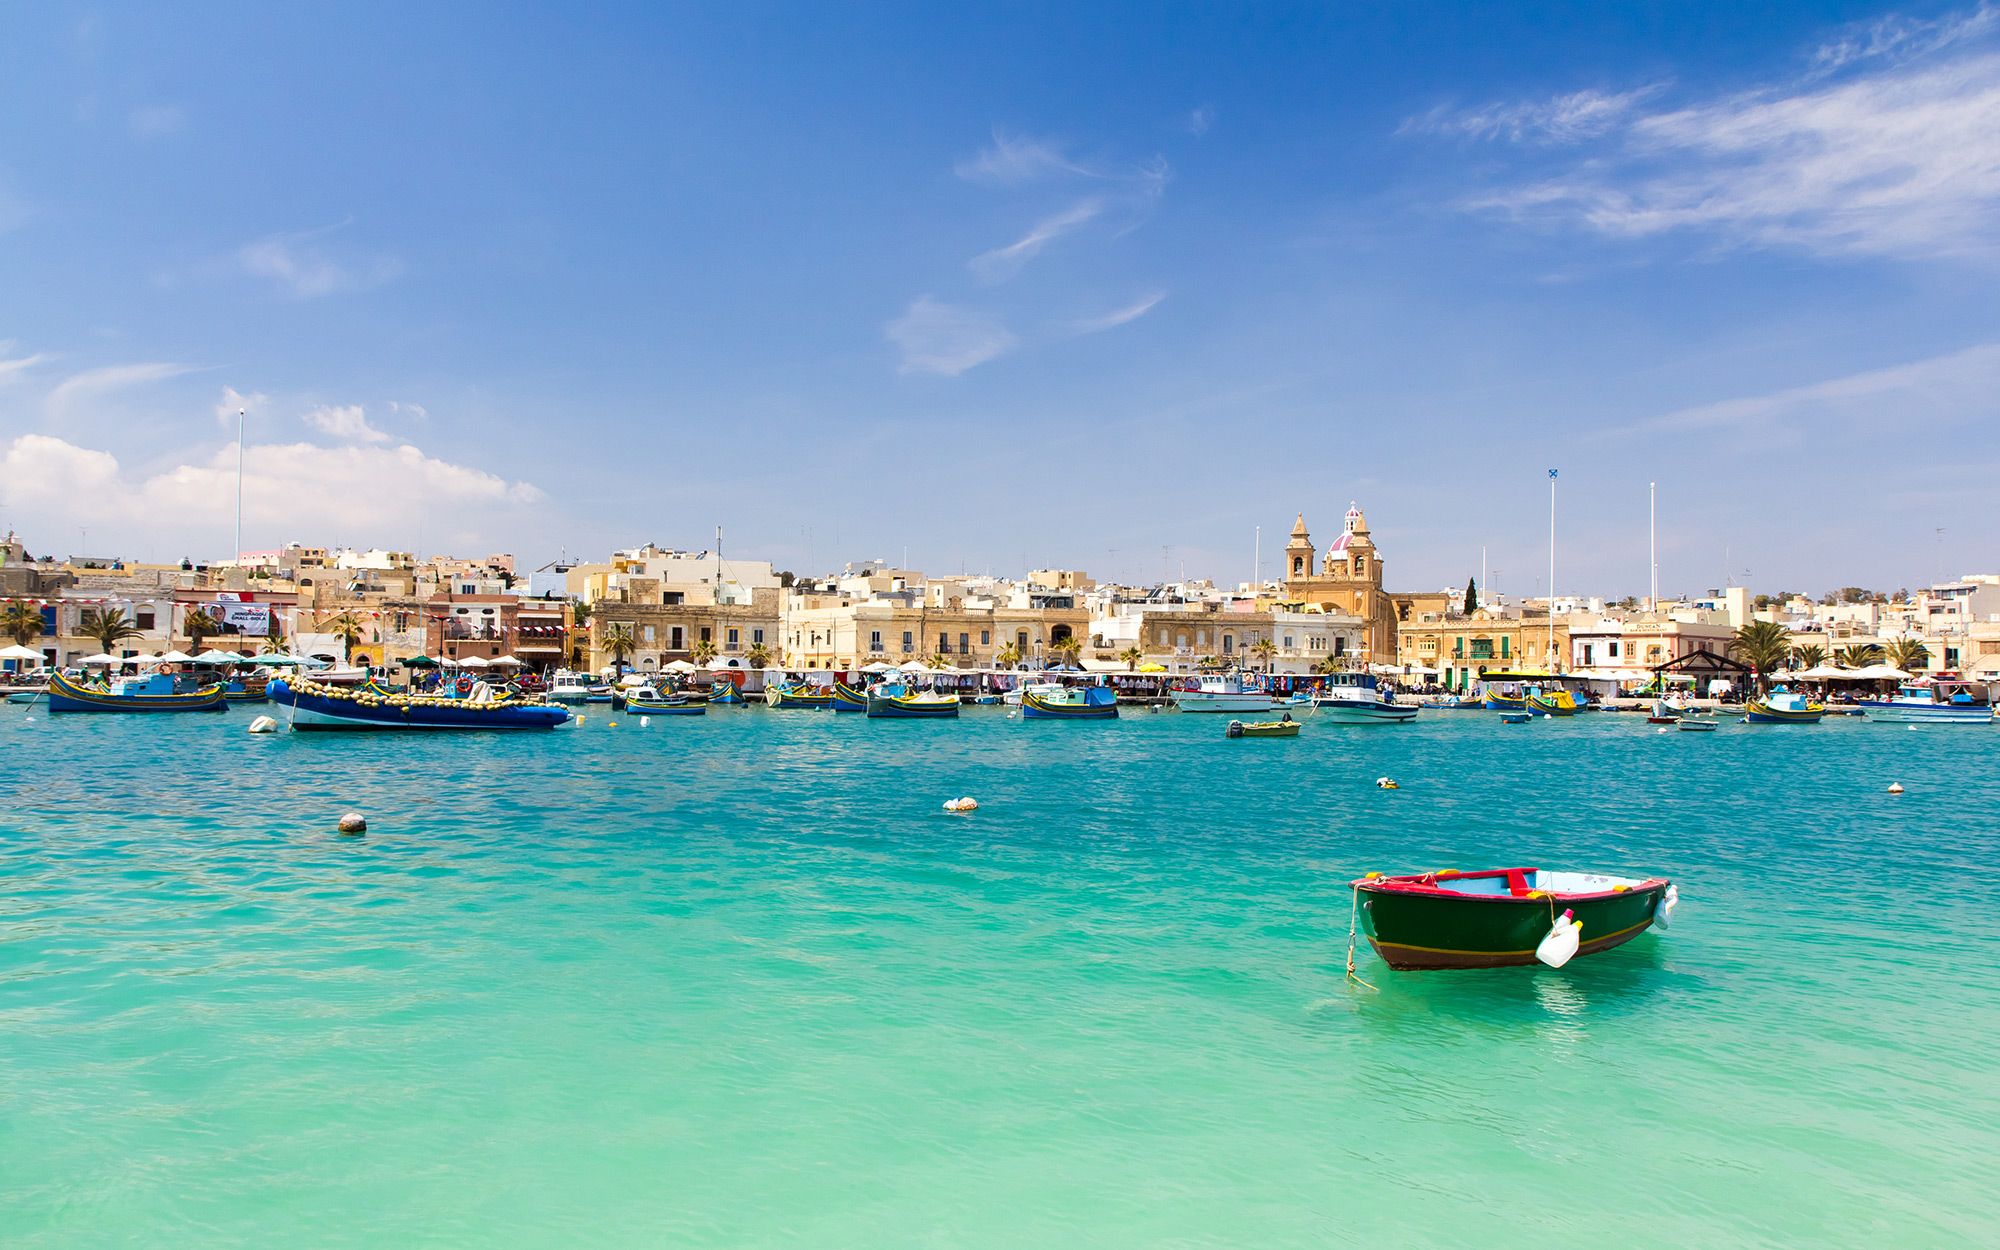 Europe's Most Beautiful Villages: Marsaxlokk, Malta